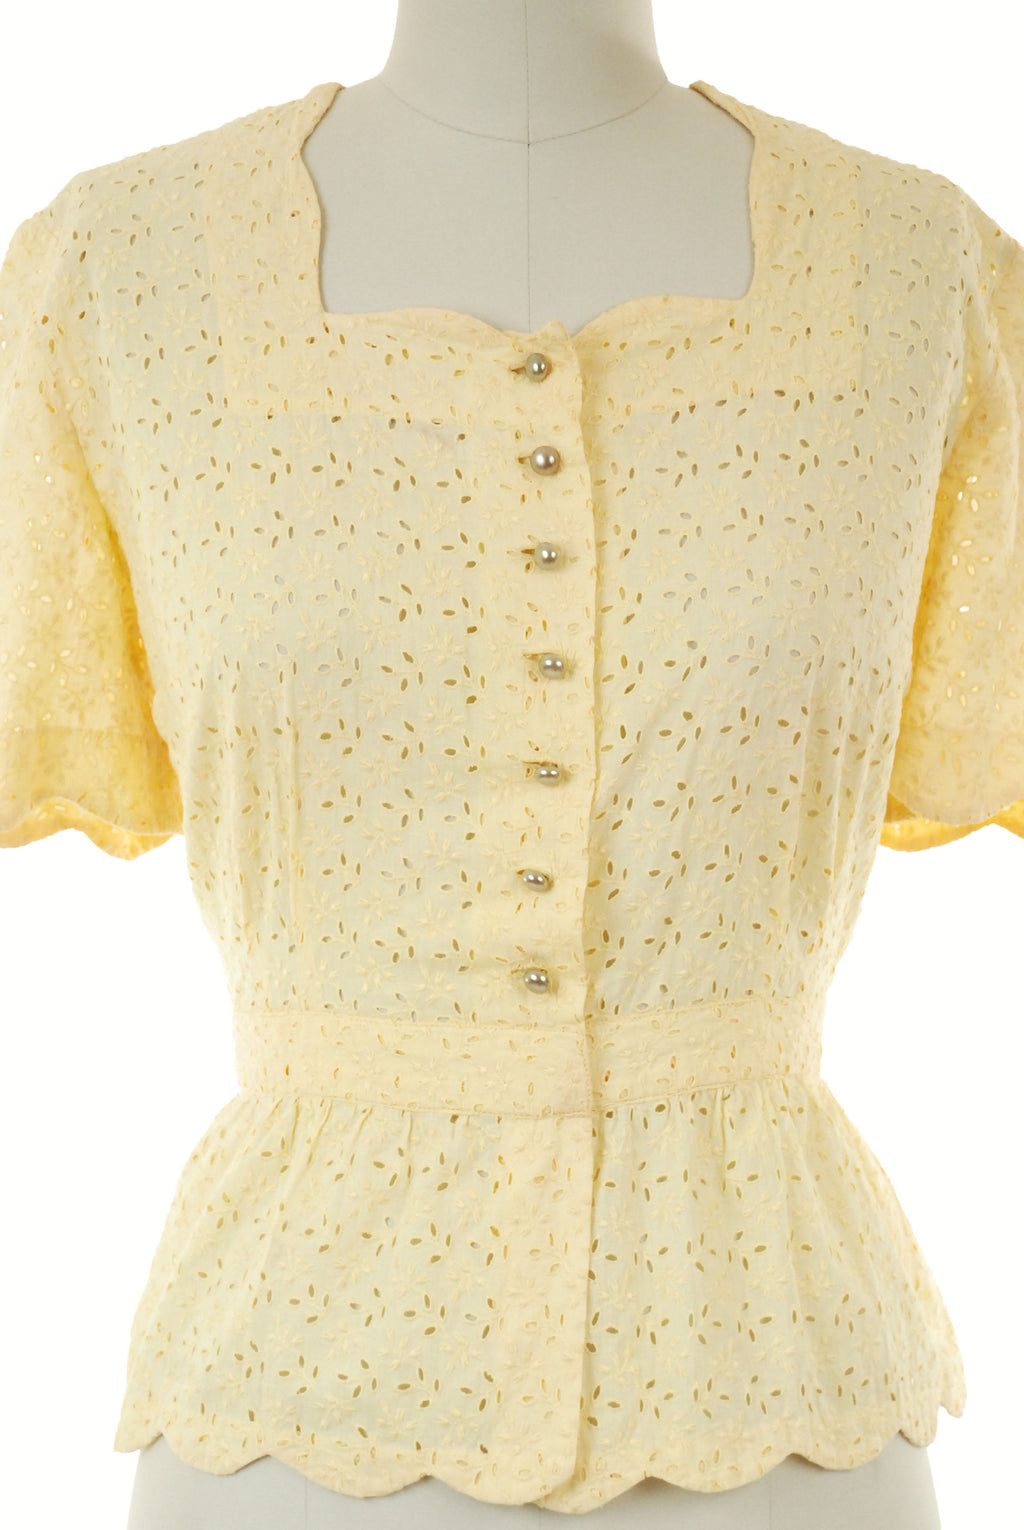 Vintage 1940s Blouse - Sunny Butter Yellow Cotton Eyelet Blouse with Fitted Waist and Scalloped Peplum